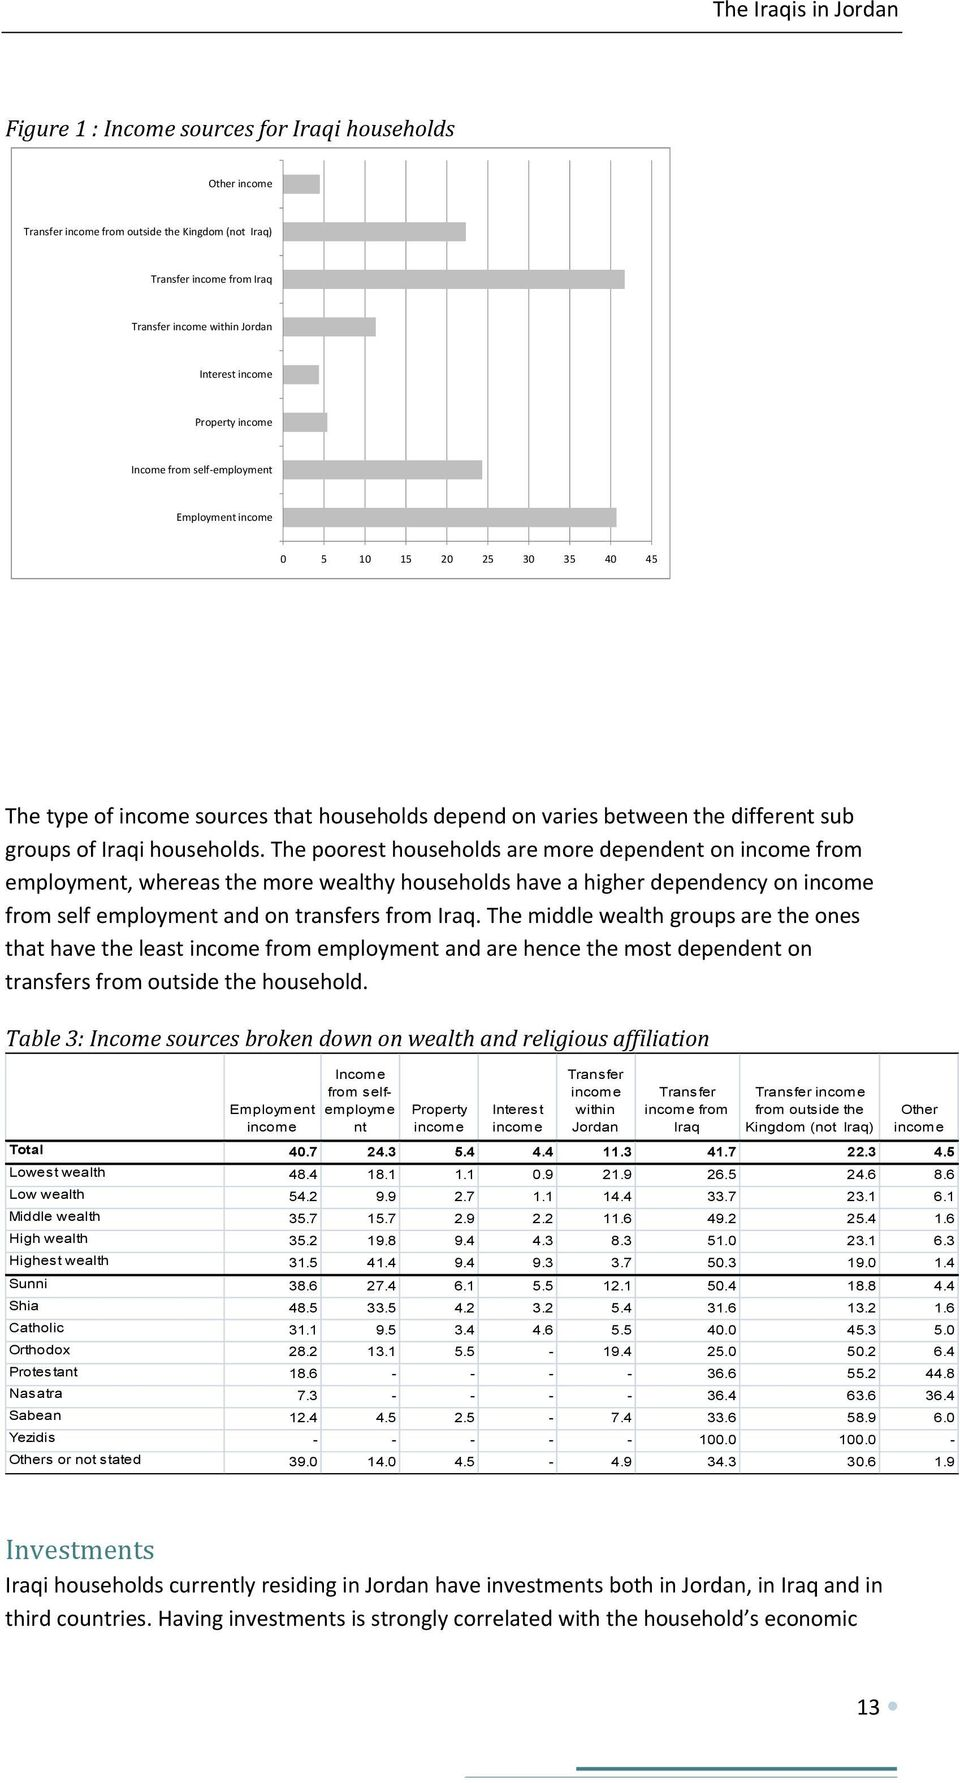 households. The poorest households are more dependent on income from employment, whereas the more wealthy households have a higher dependency on income from self employment and on transfers from Iraq.